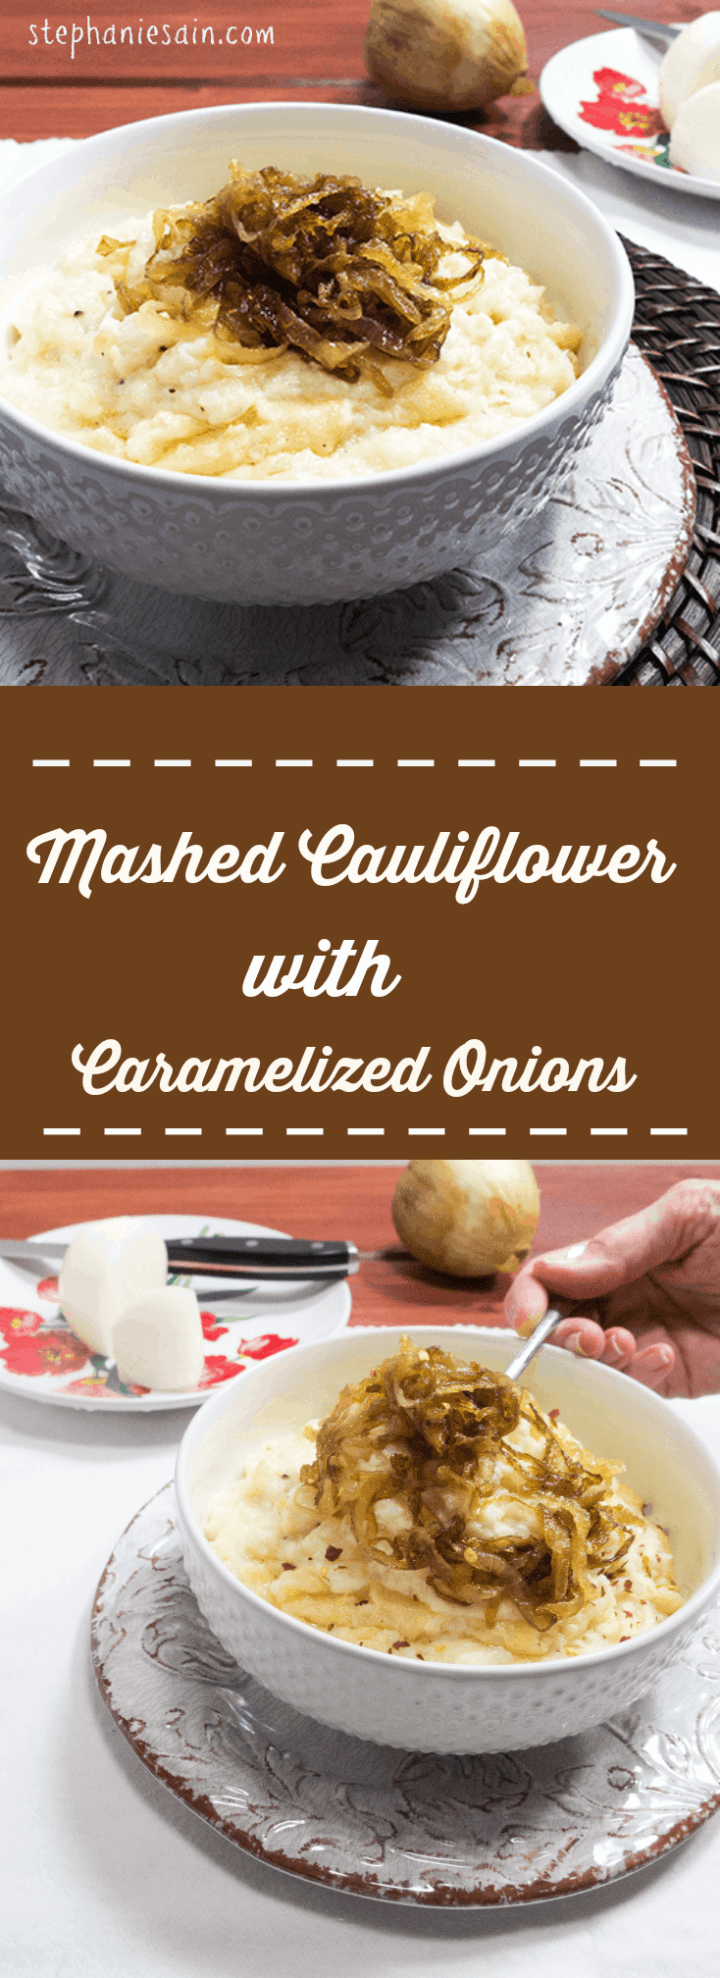 Mashed Cauliflower with Caramelized Onions is a lower carb tasty option for mashed potatoes. Vegetarian and Gluten Free.